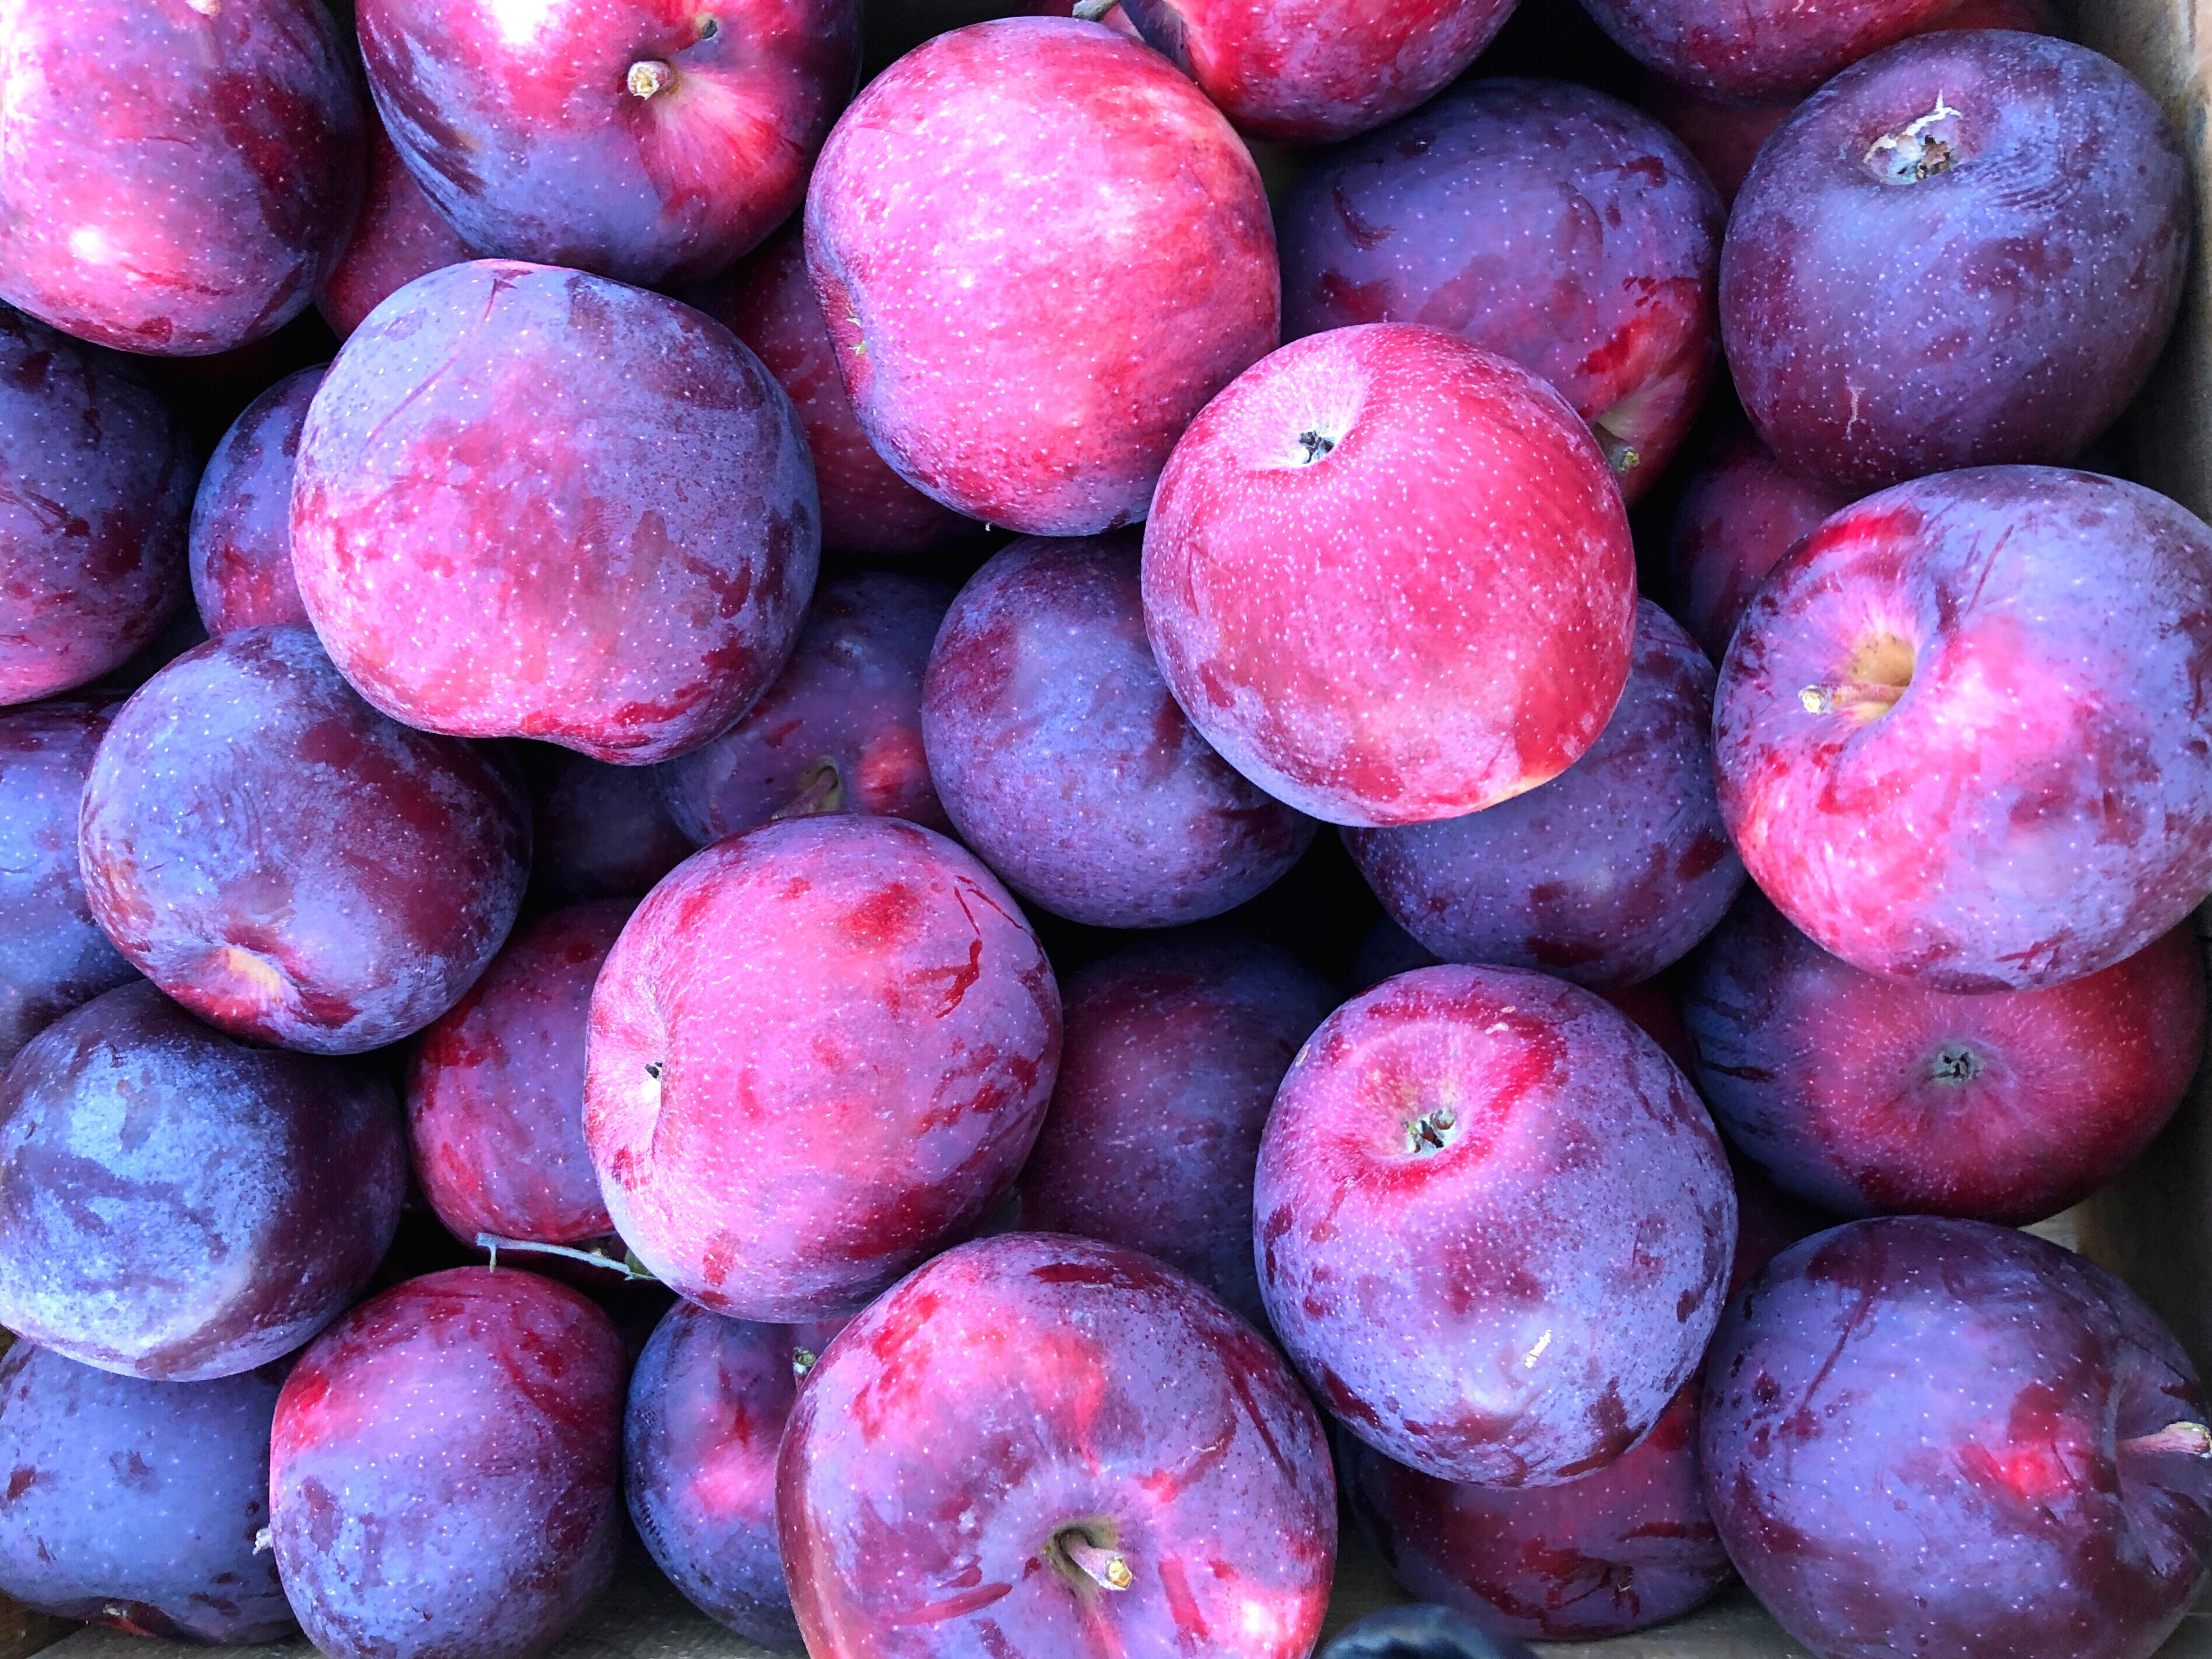 #freetoedit #apples #nofilter #purple #backgrounds #fruit #highangle #healthyeating #pink #red